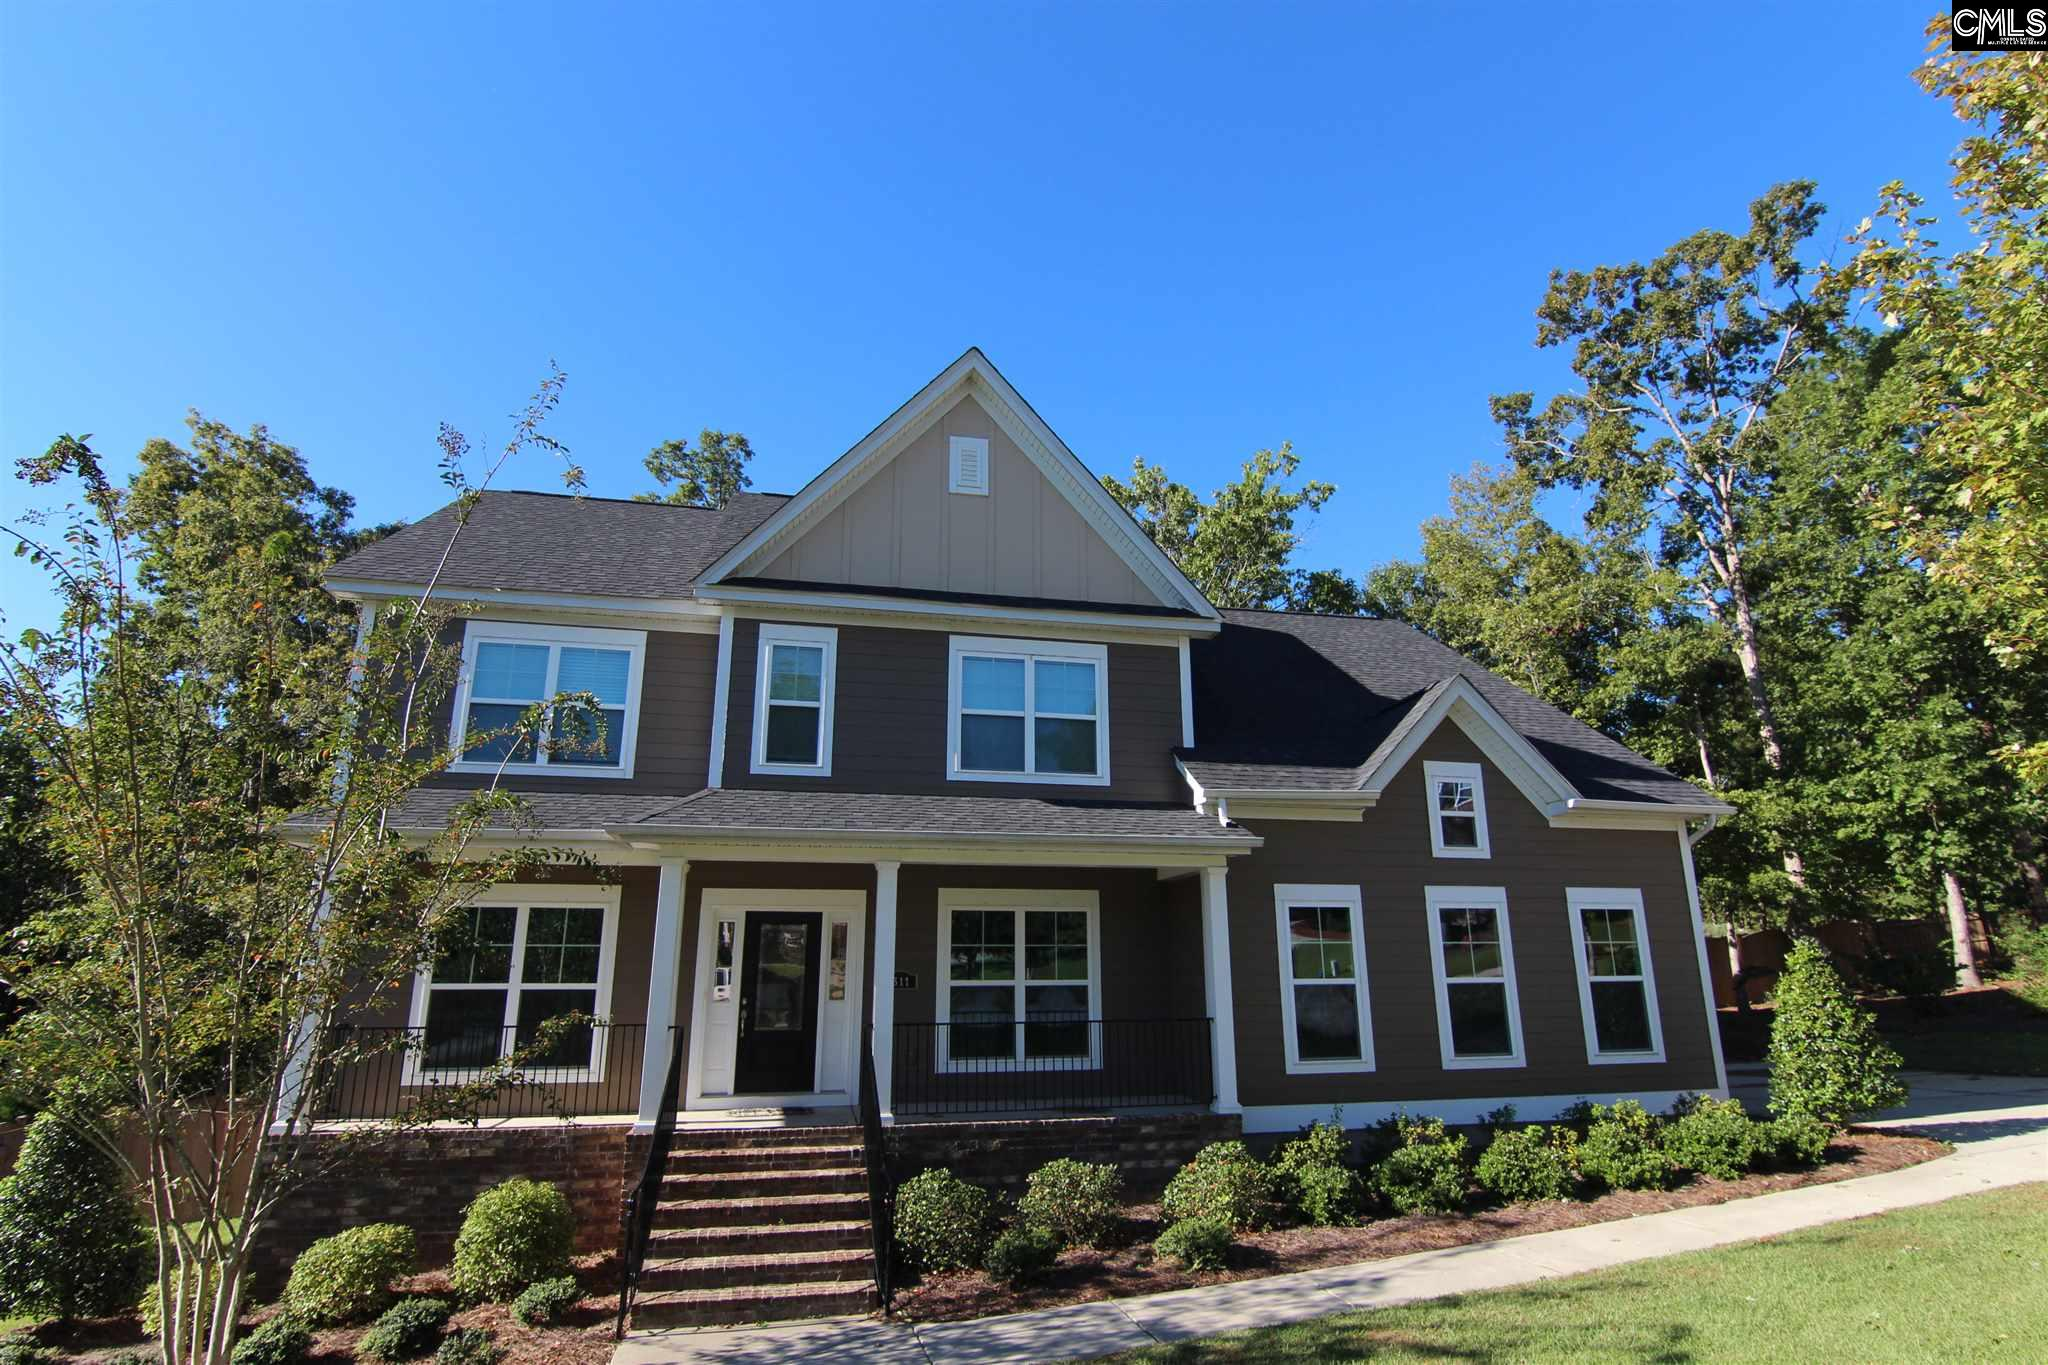 311 Glengary Lexington, SC 29072